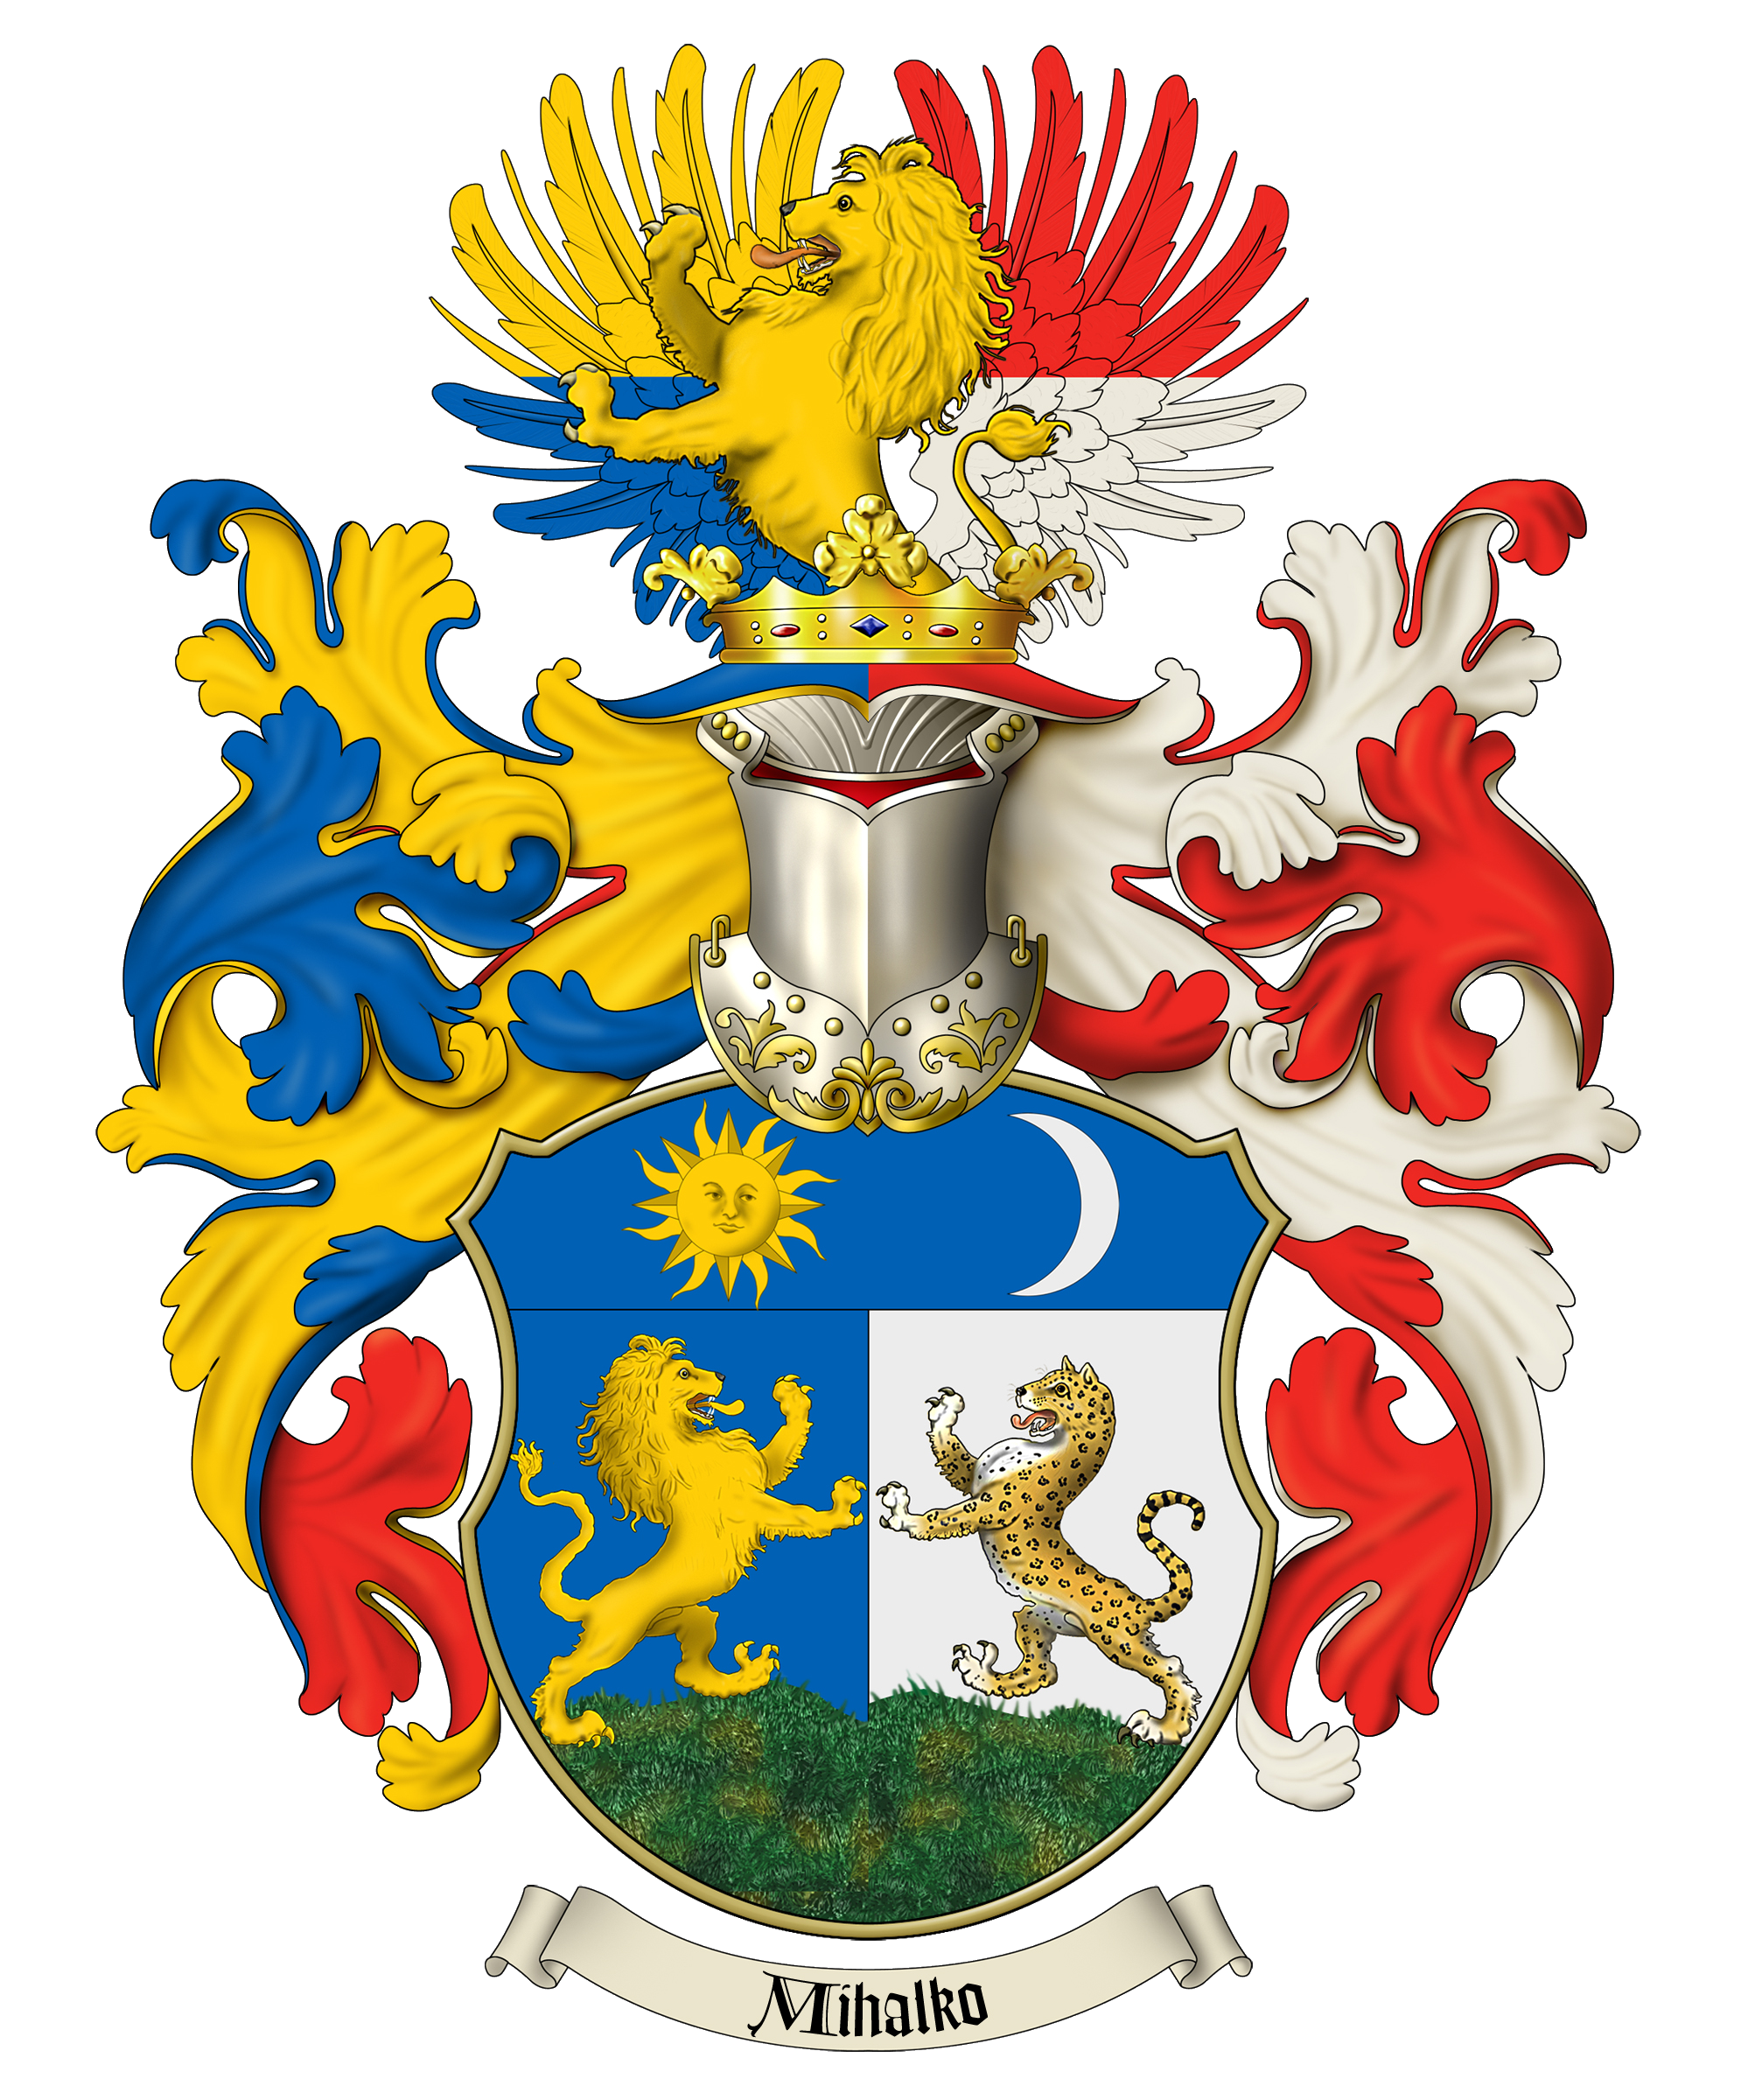 Family Crest And Coat Of Arms